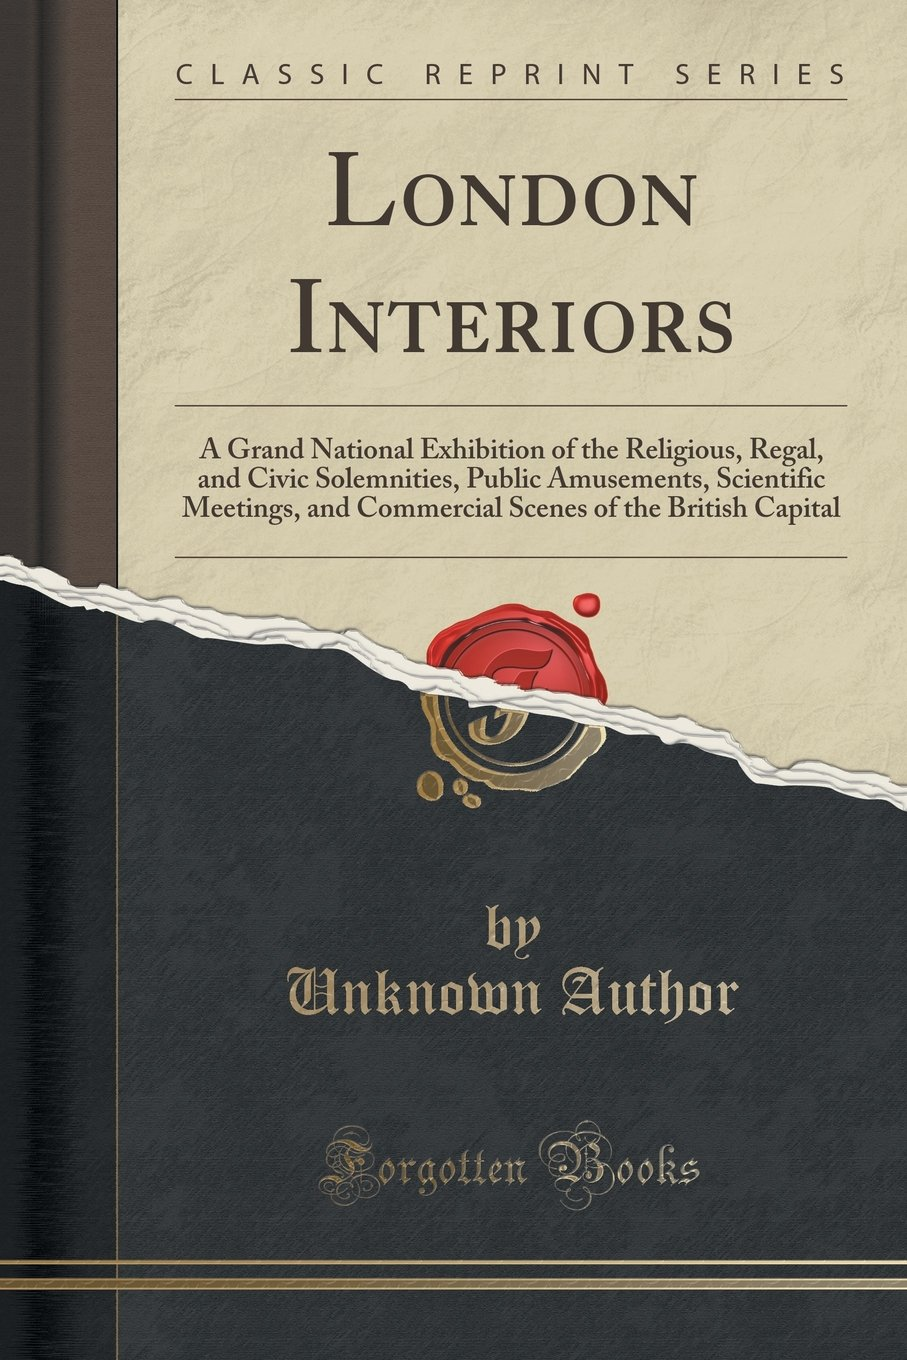 Download London Interiors: A Grand National Exhibition of the Religious, Regal, and Civic Solemnities, Public Amusements, Scientific Meetings, and Commercial Scenes of the British Capital (Classic Reprint) ebook